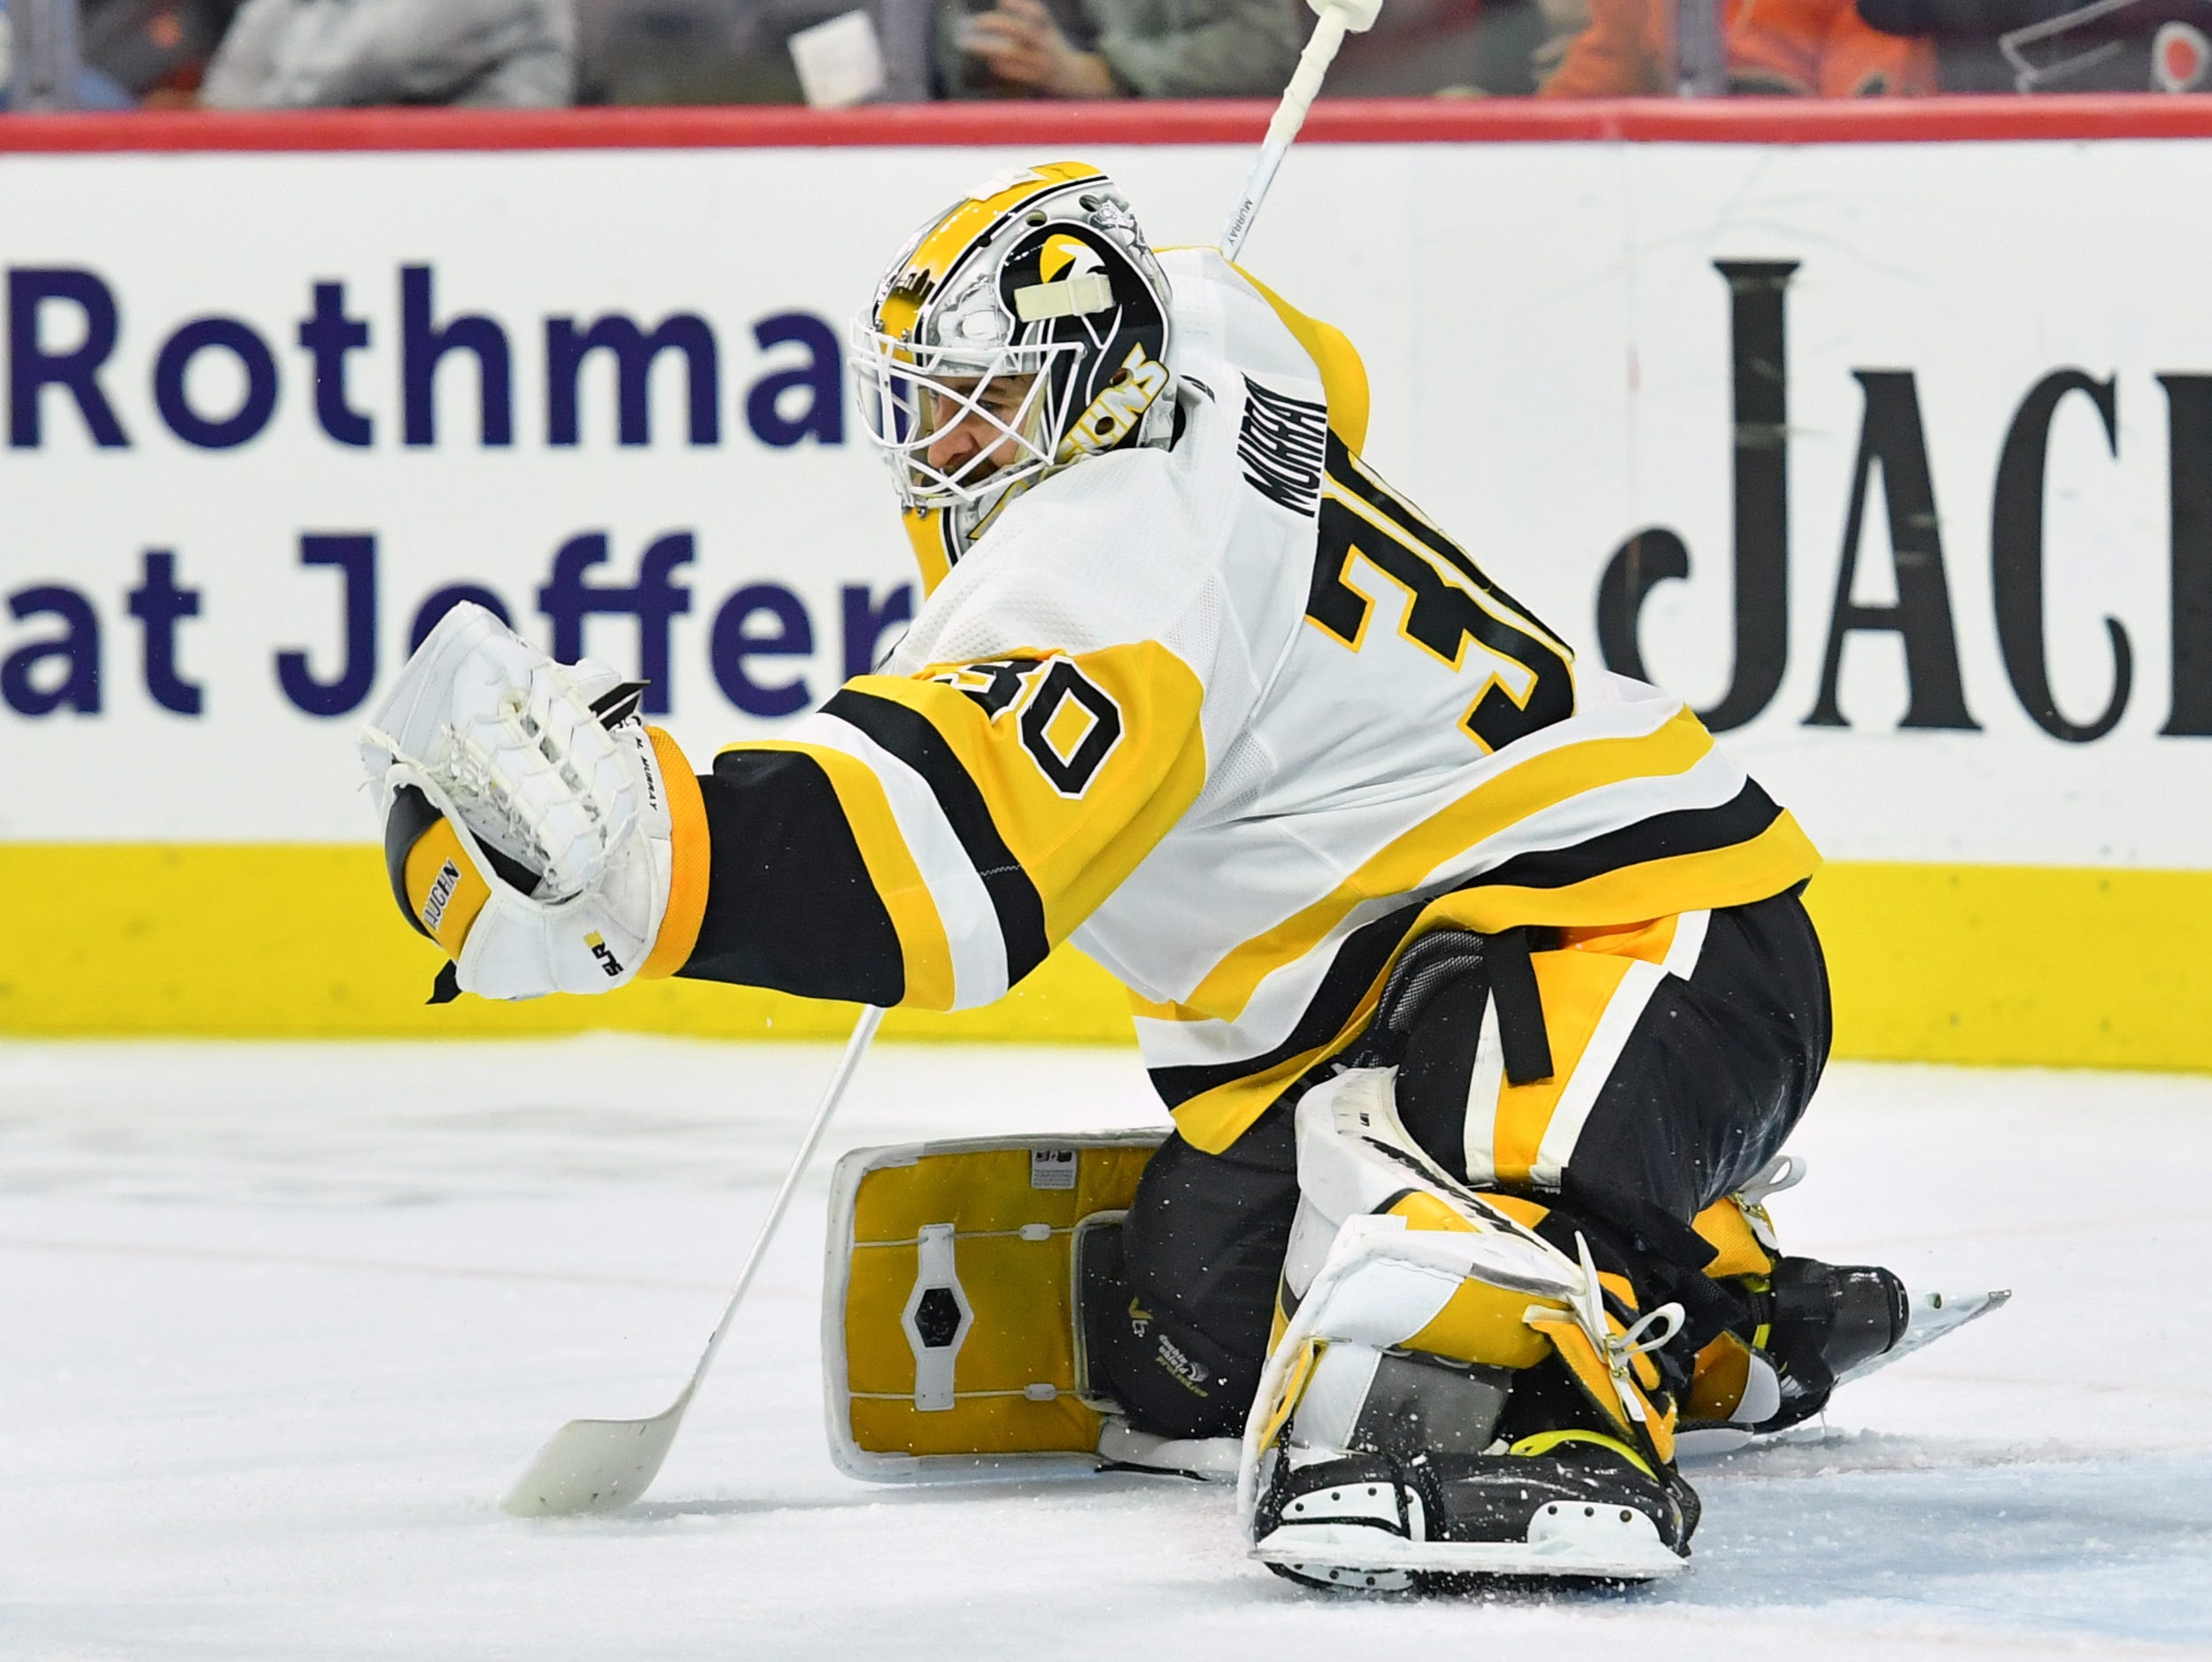 Feb. 11: Pittsburgh Penguins goaltender Matt Murray makes one of his 50 saves in a 4-1 victory against the Philadelphia Flyers.